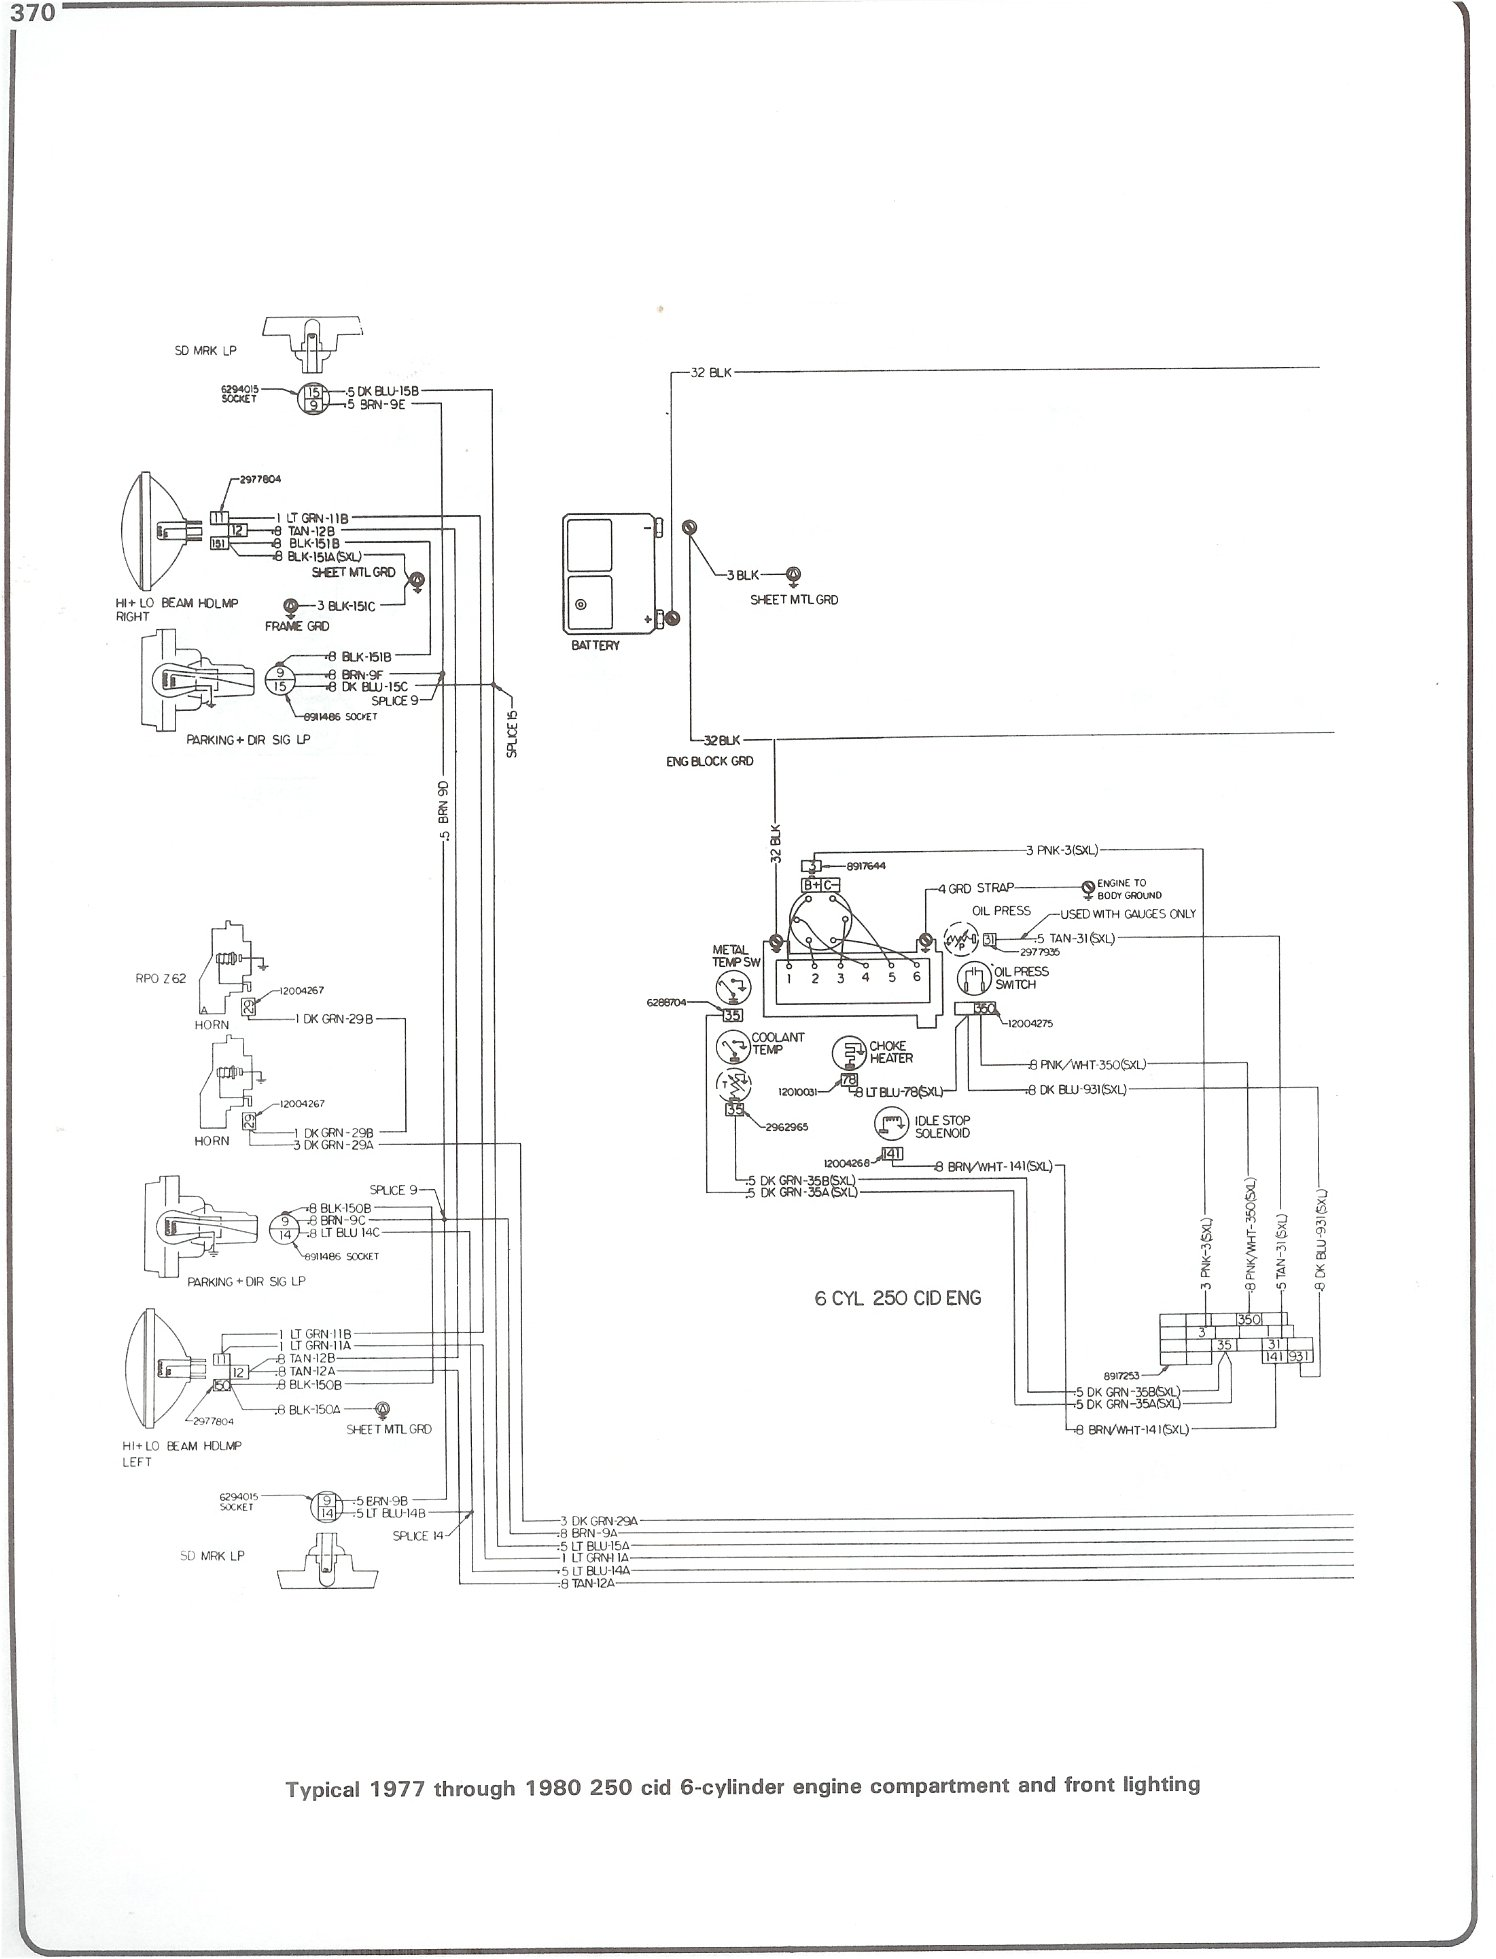 1976 chevy truck belt diagram wiring schematic wiring diagramcomplete 73 87 wiring diagrams77 80 250 i6 engine wiring and front lighting